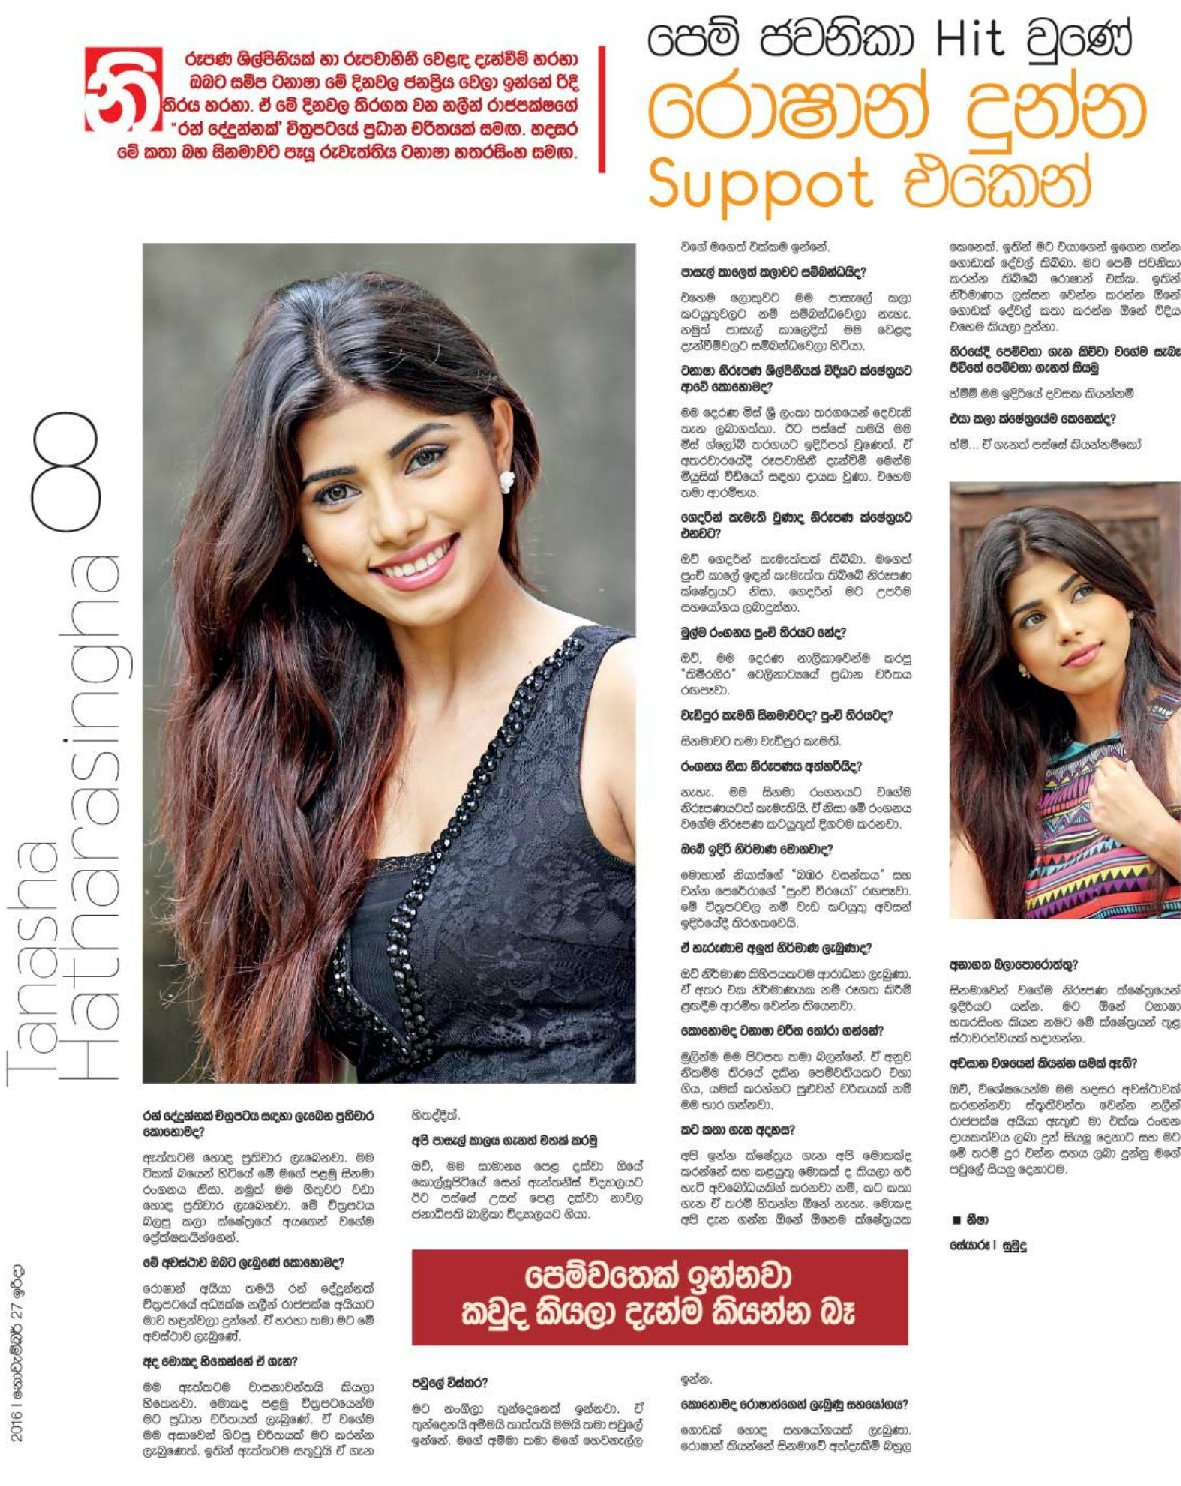 Interview with Sri Lankan Actress Natasha Satharasinghe